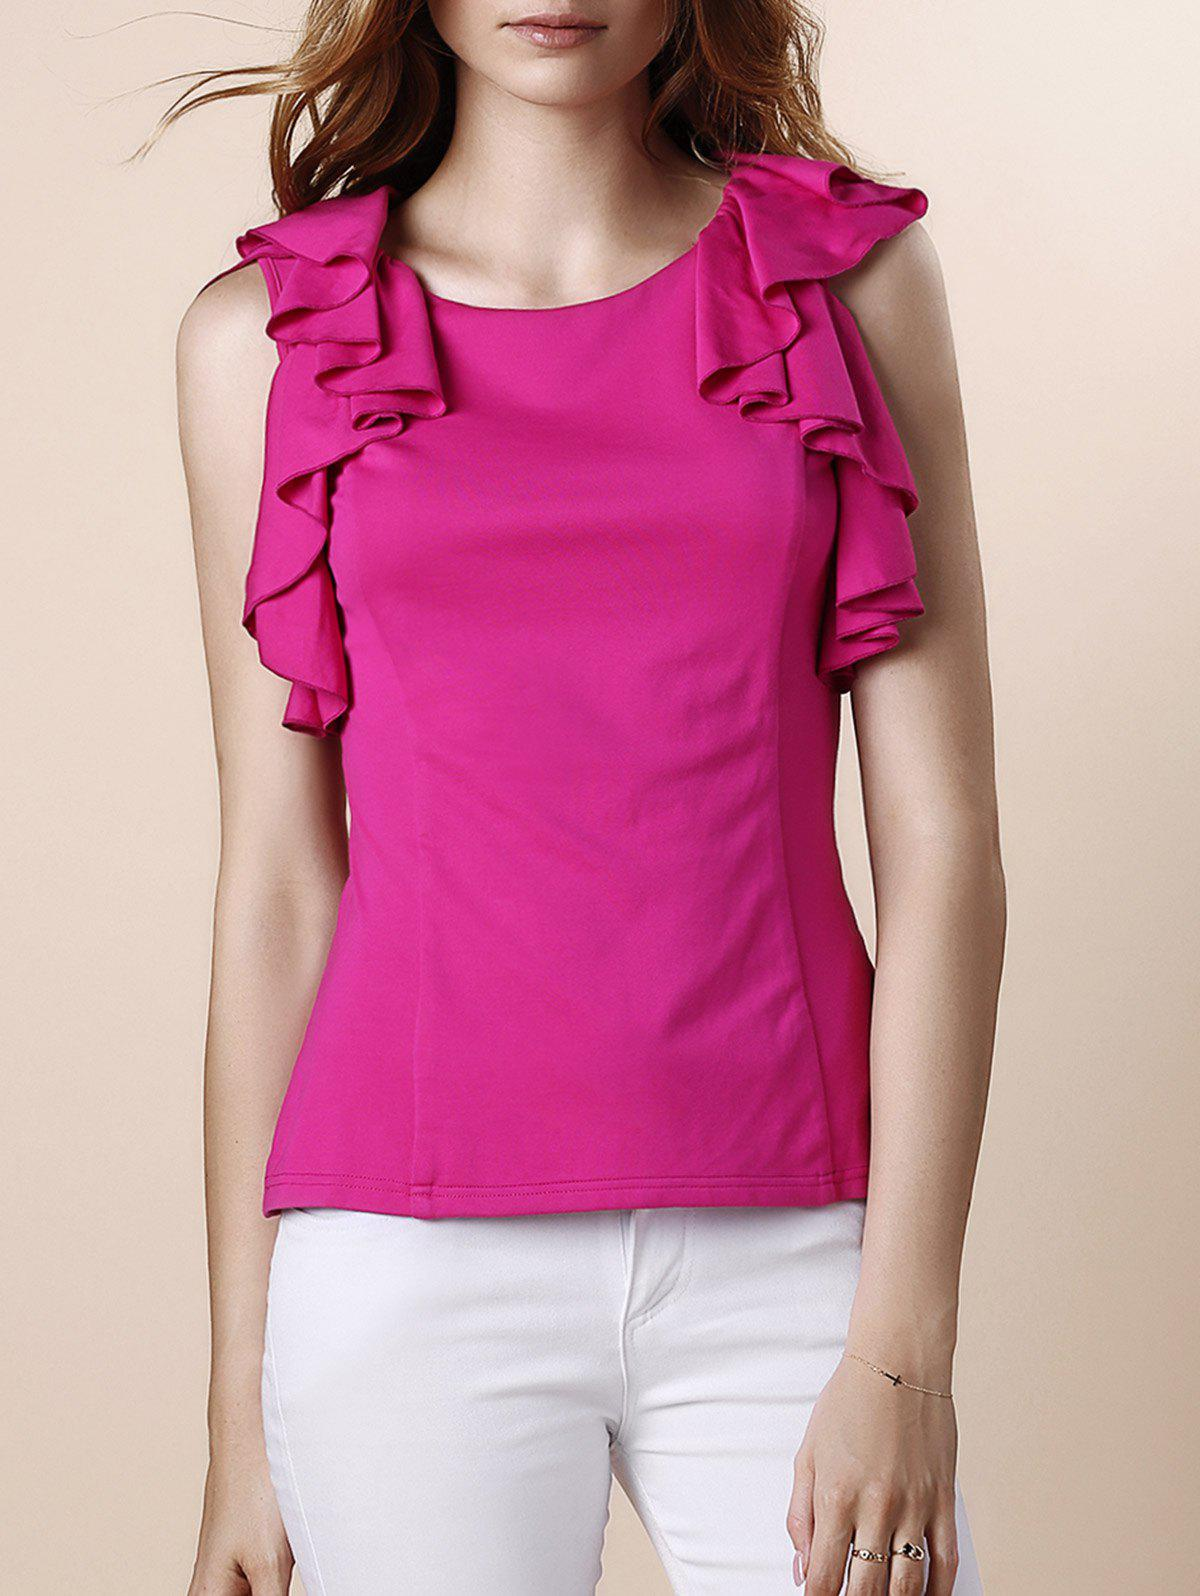 Sweet Women's Round Neck Ruffles Sleeveless Blouse - L ROSE